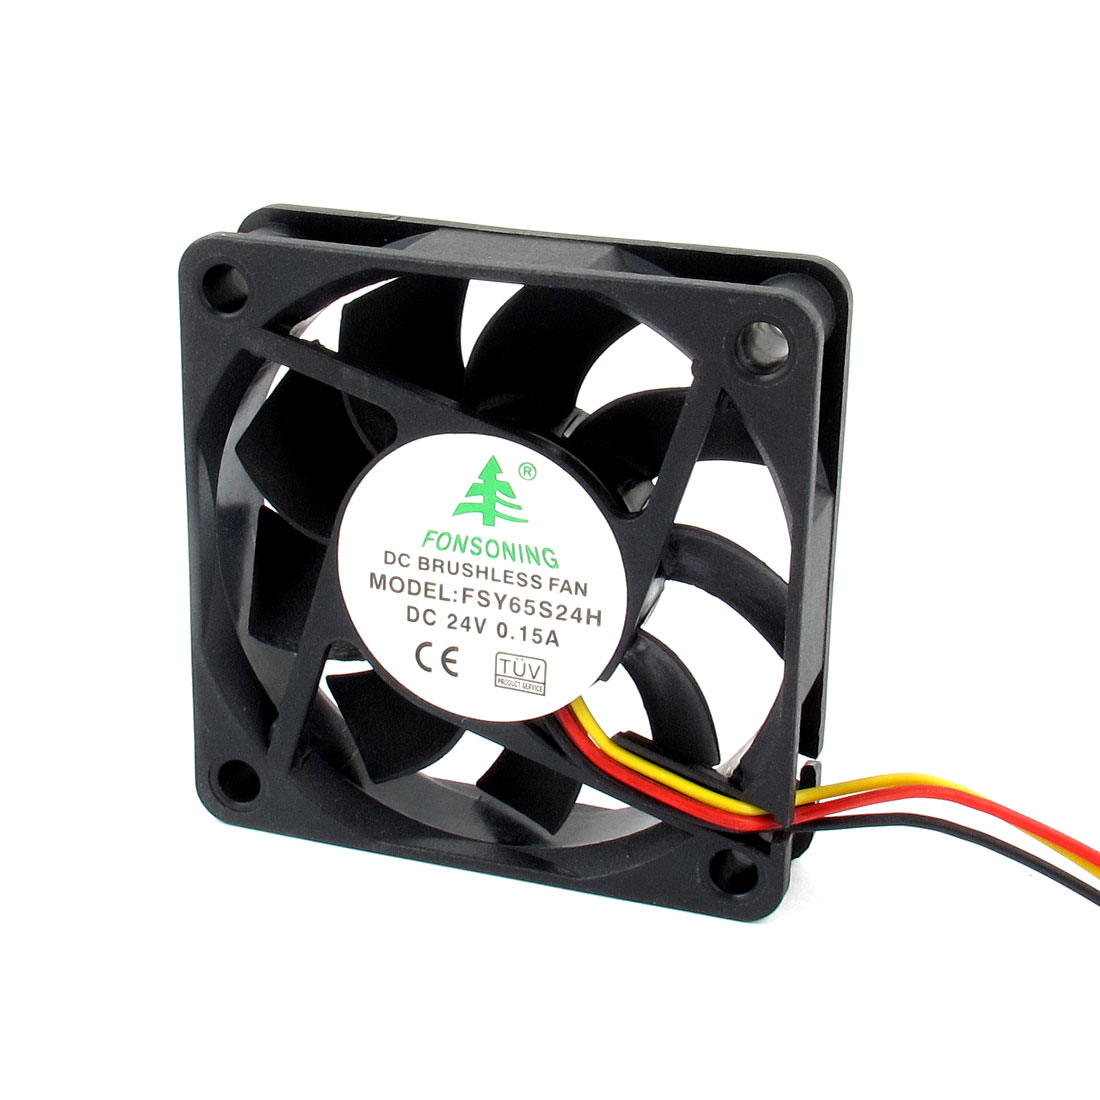 DC 24V 0.15A 3 Pin Connector PC Computer Case Cooling Fan 60mm x 60mm